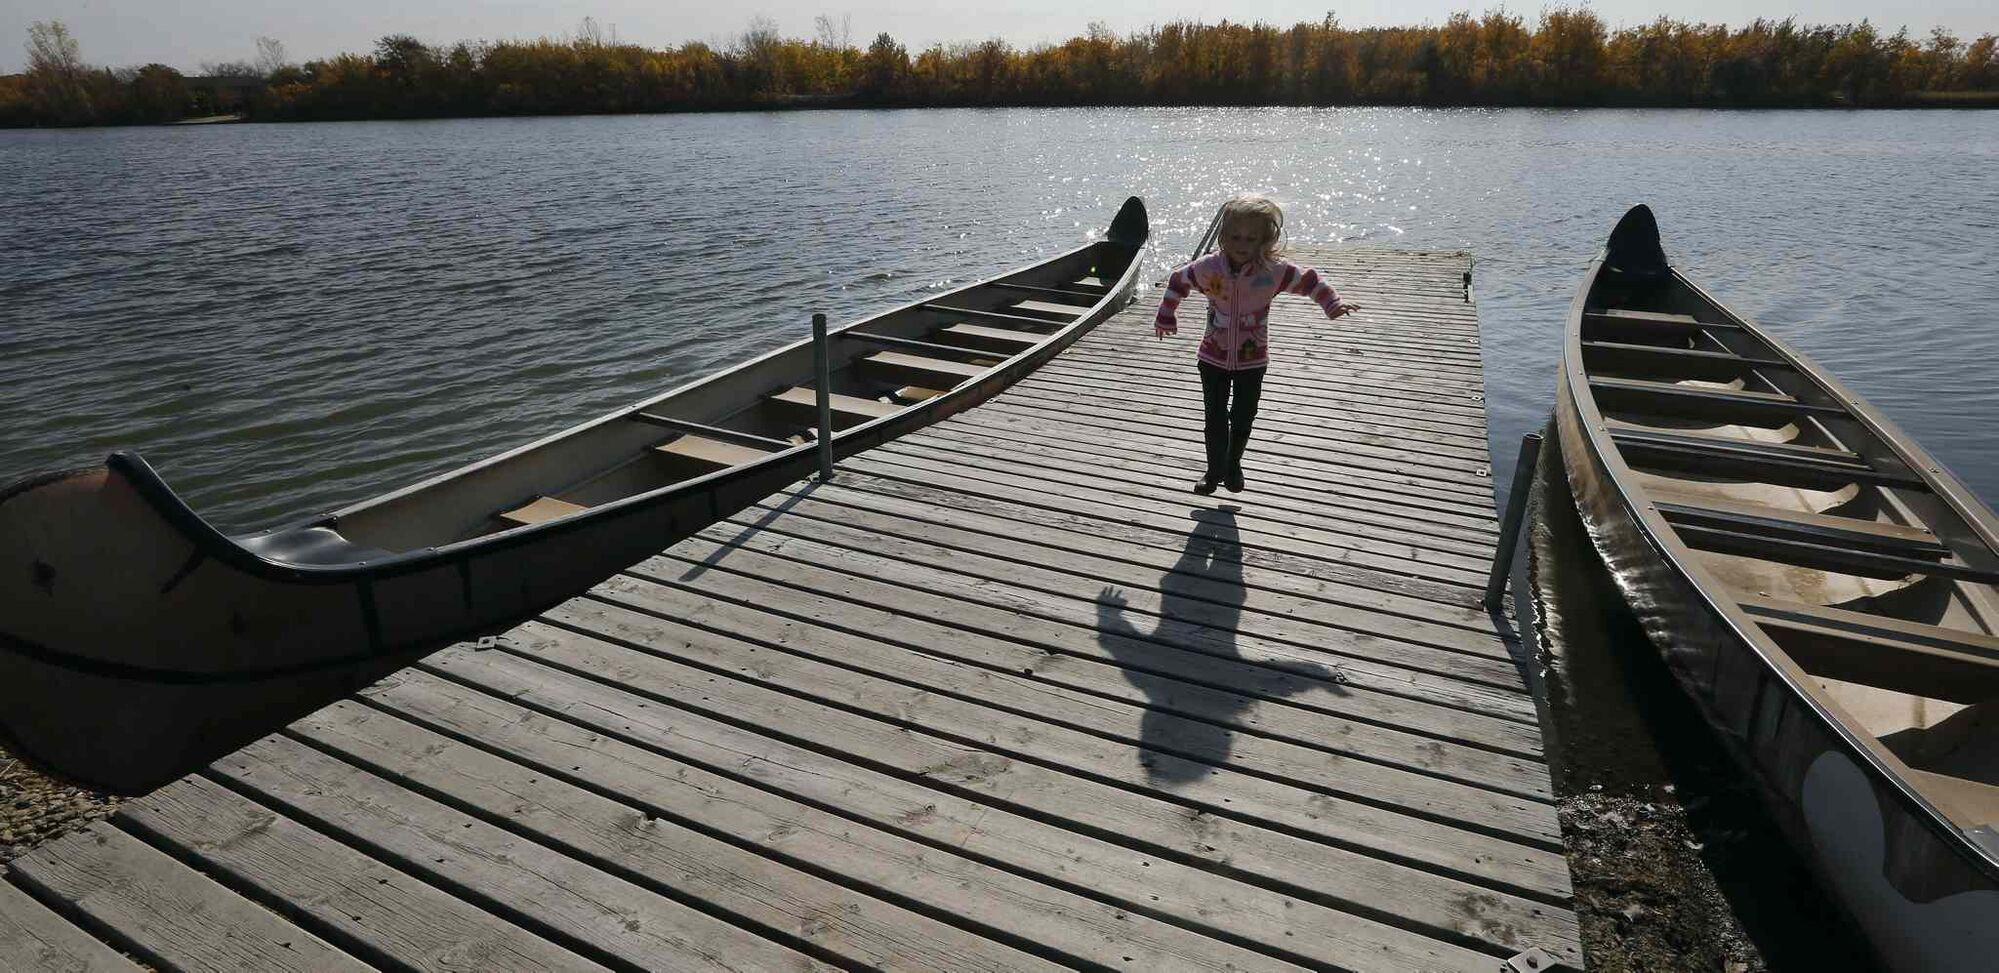 Docks are a starting point for canoeing or fishing, an entirely different fall activity. (KEN GIGLIOTTI / WINNIPEG FREE PRESS)